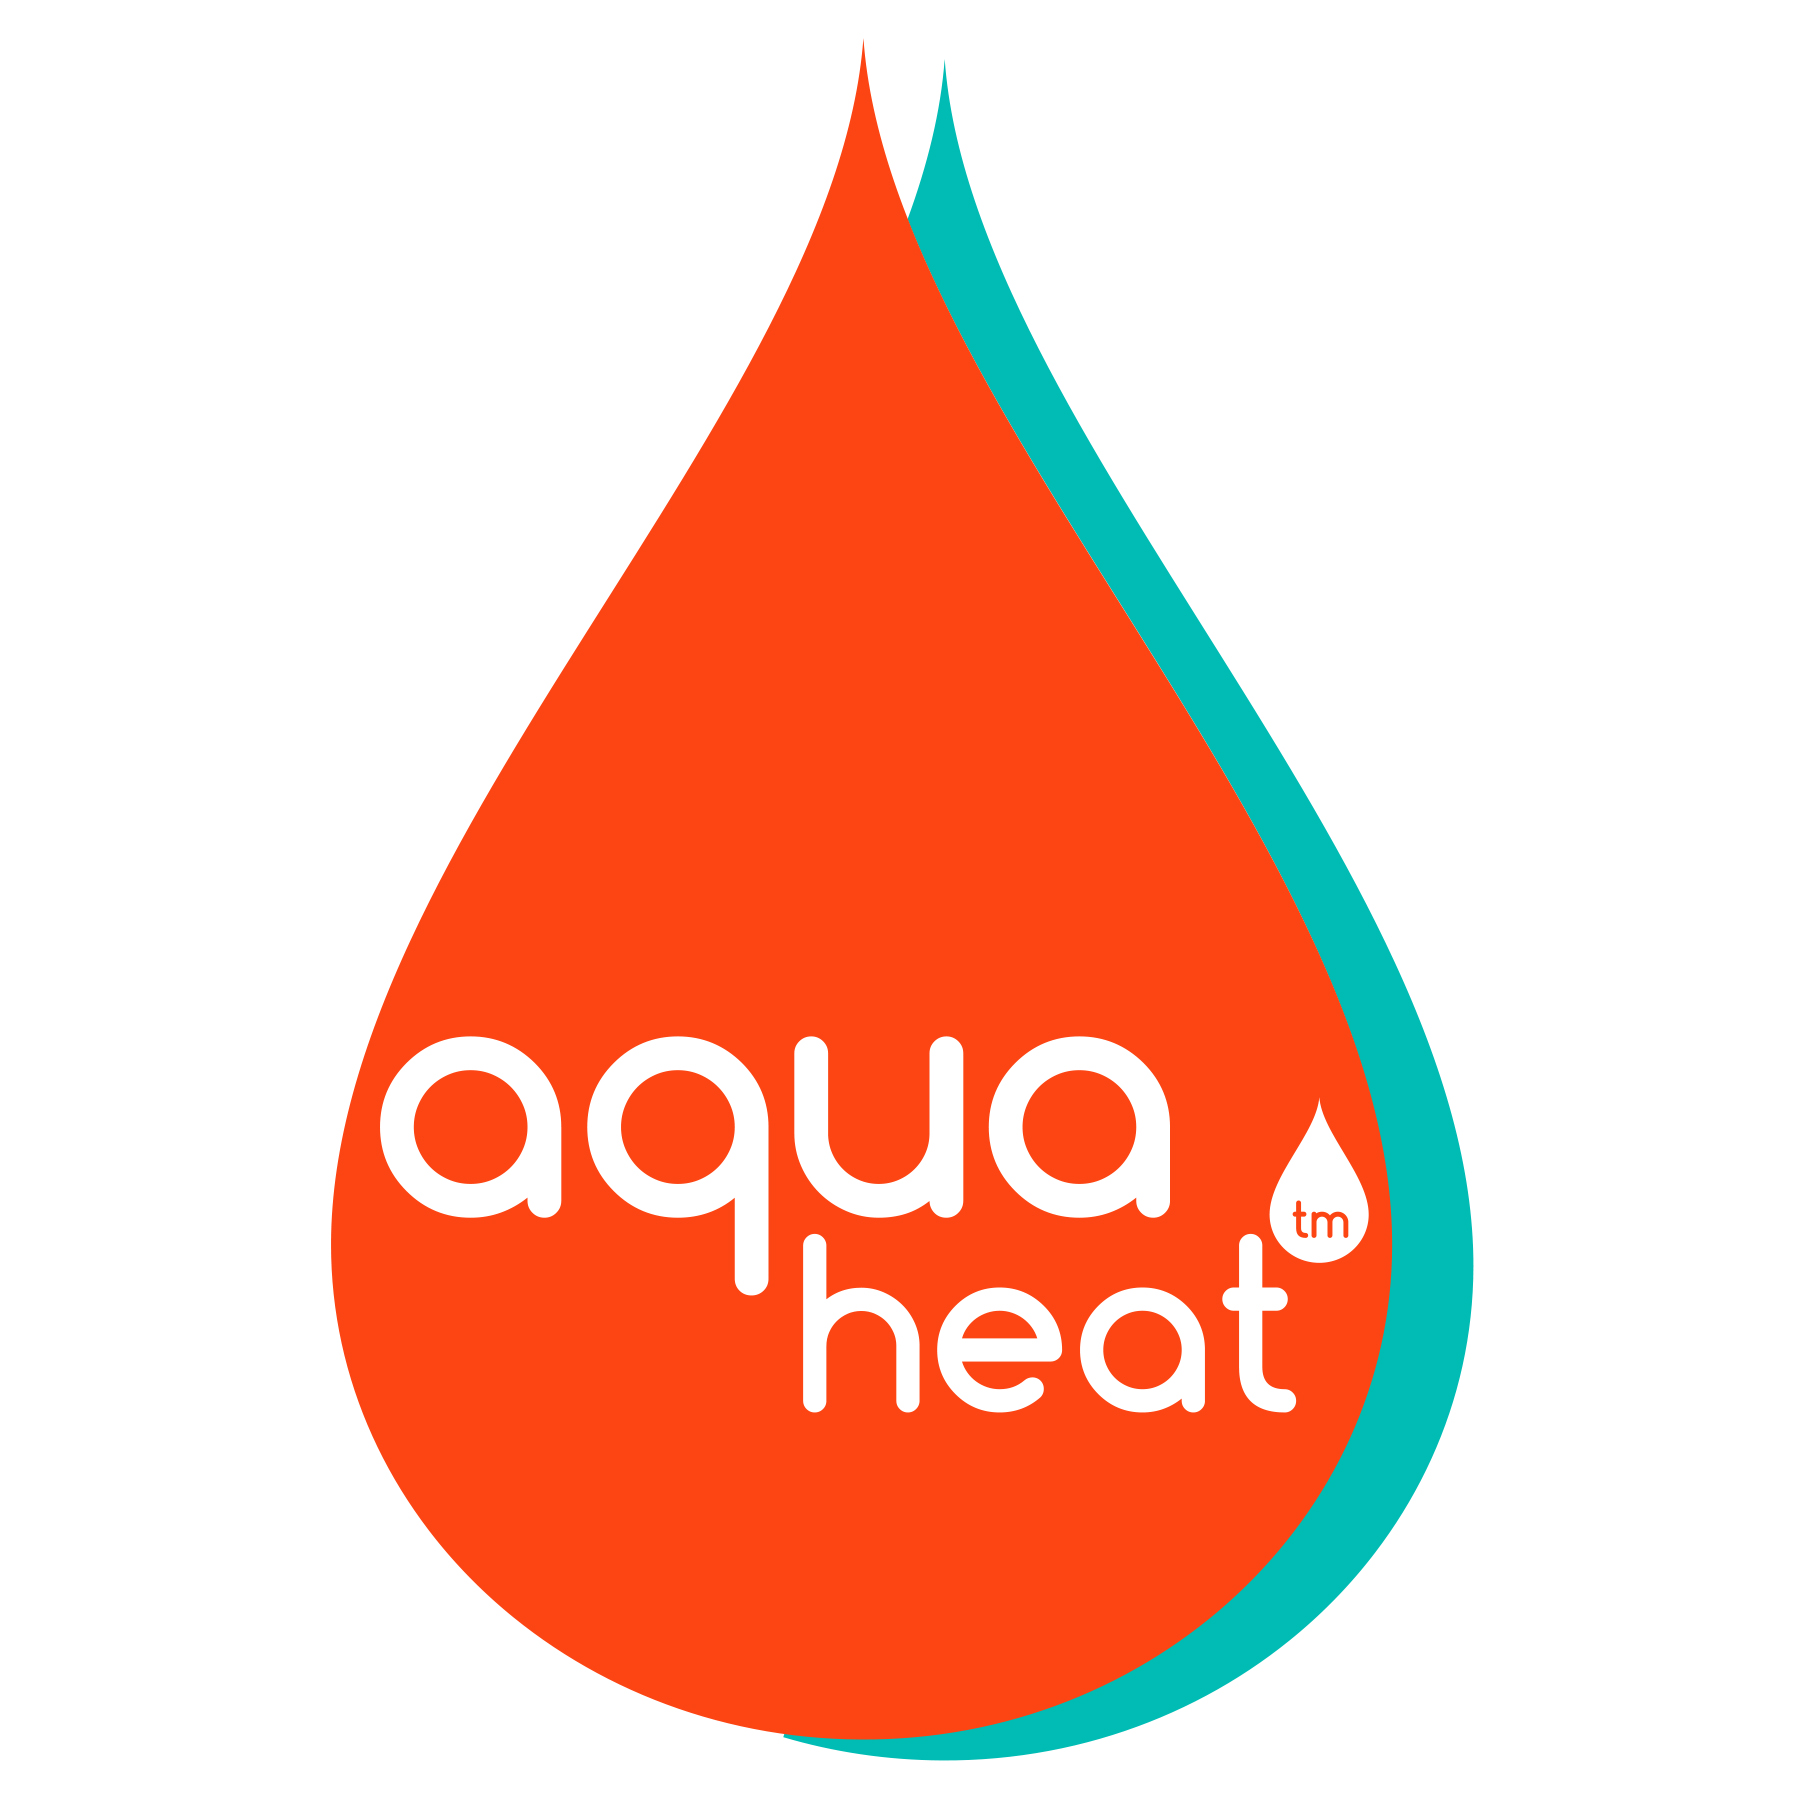 aquaheat-logo-tm.jpg